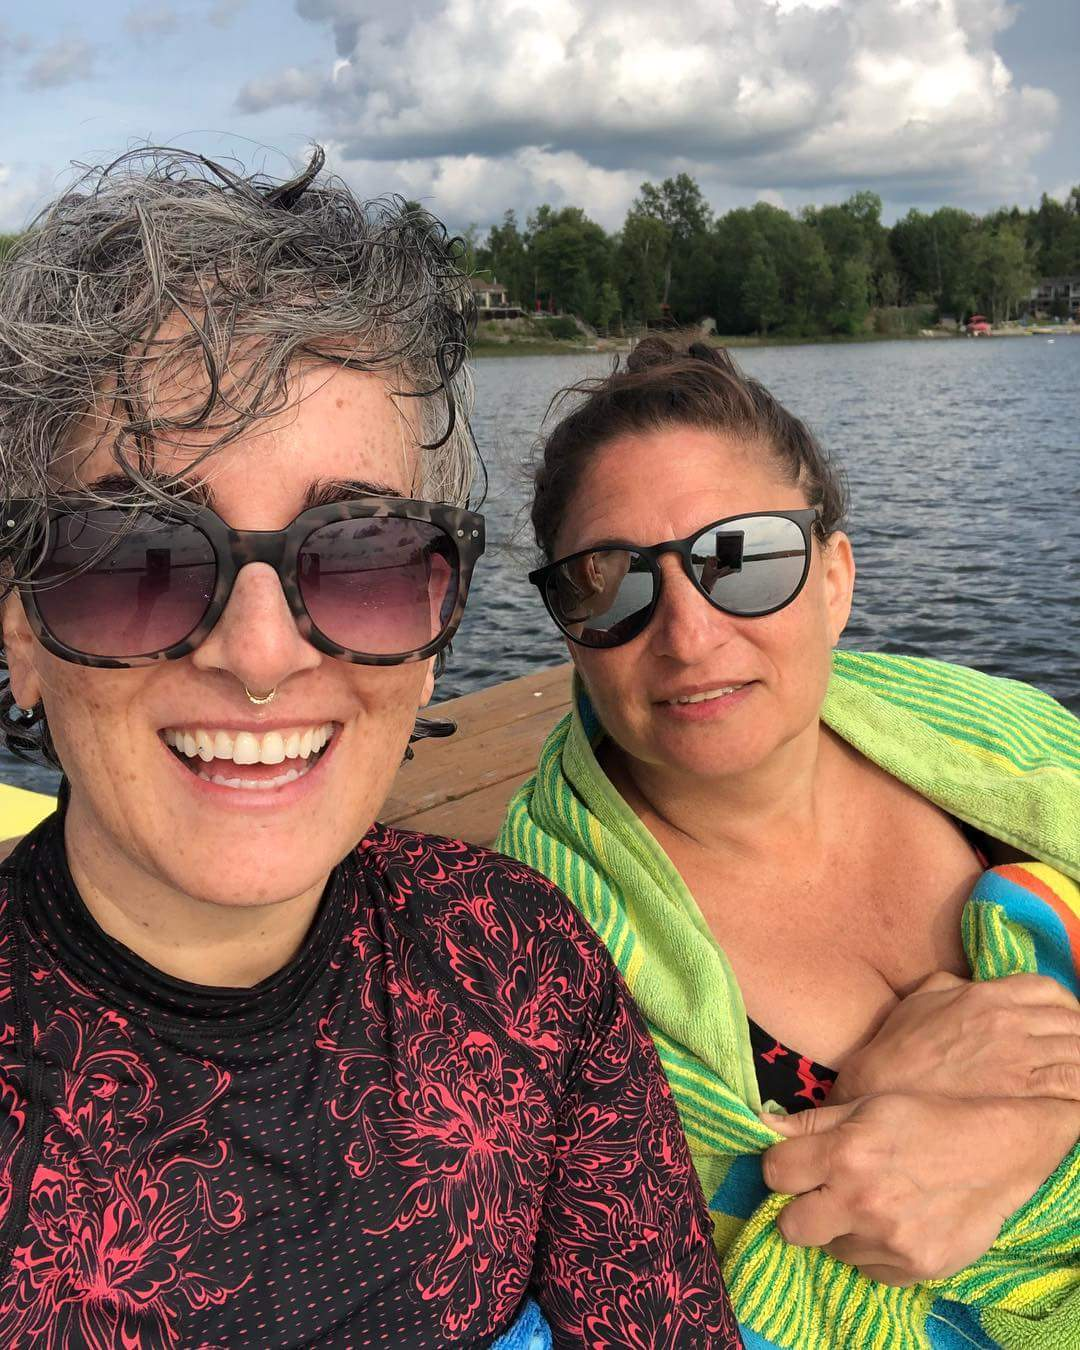 Importance of Friendship-the author with her friend Sarah at a lake